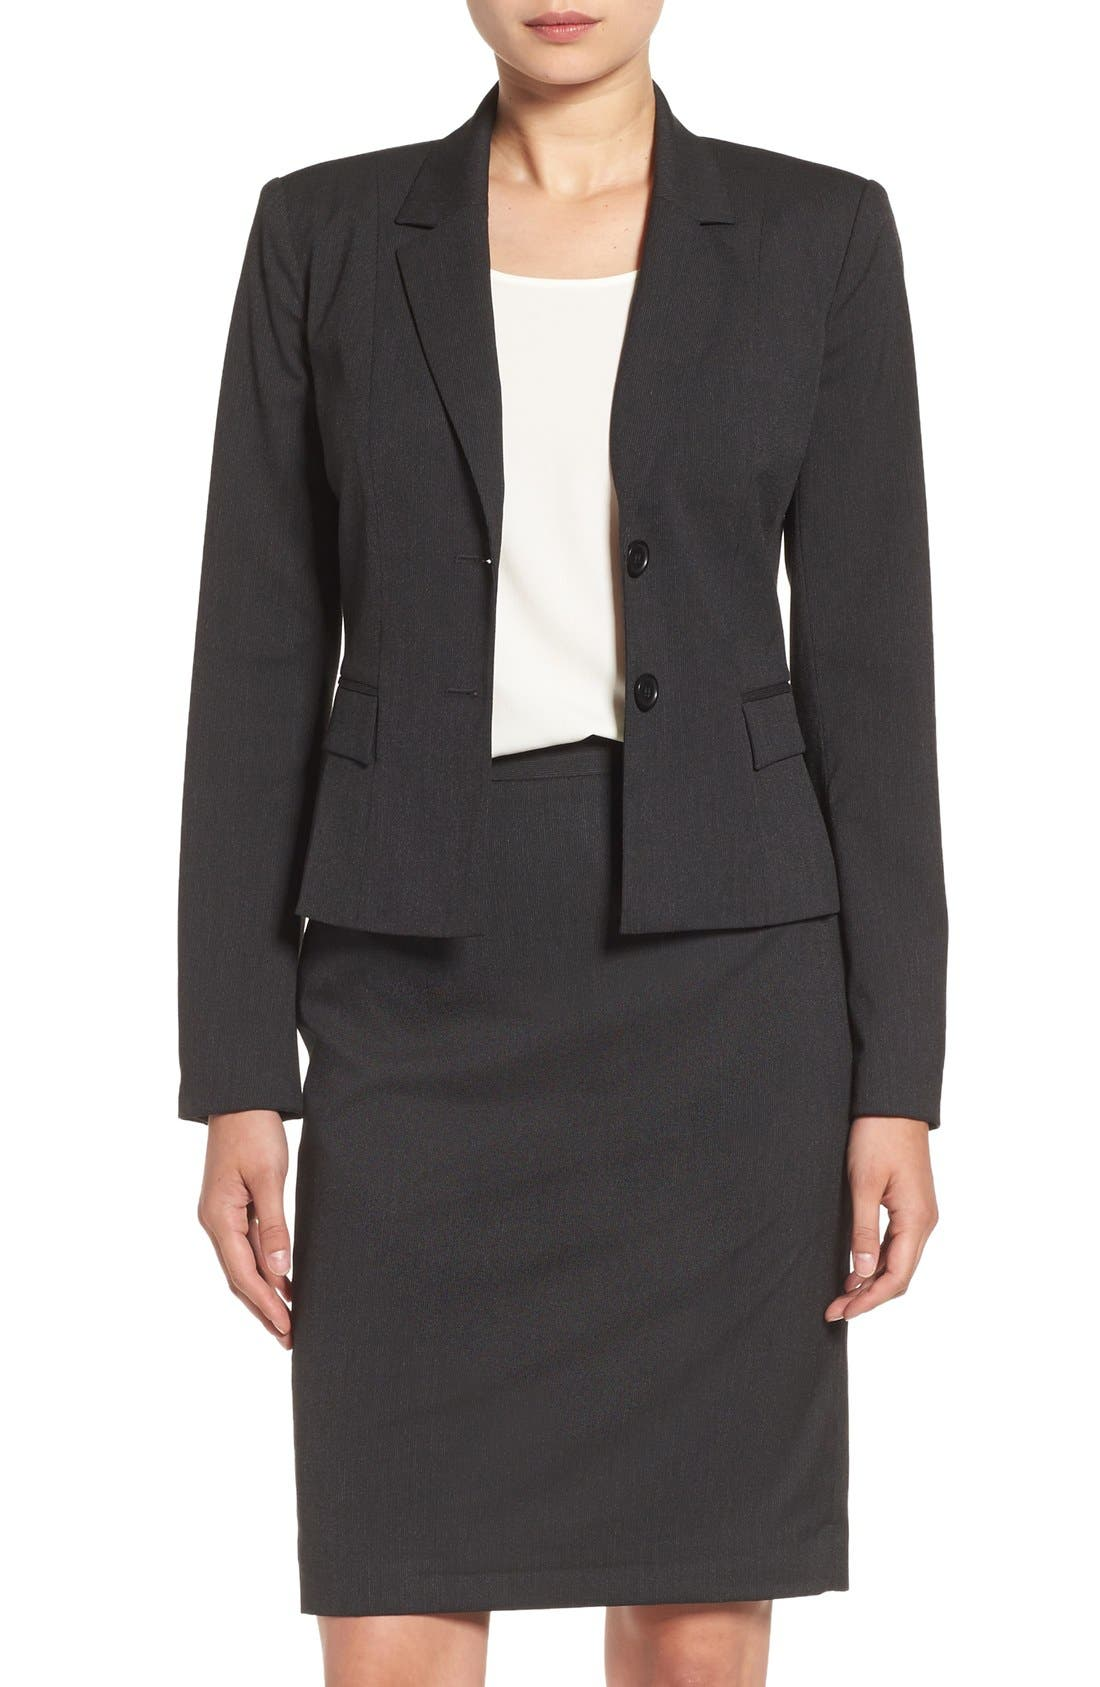 Alternate Image 1 Selected - Halogen® Mini Stripe Suit Jacket (Regular & Petite)